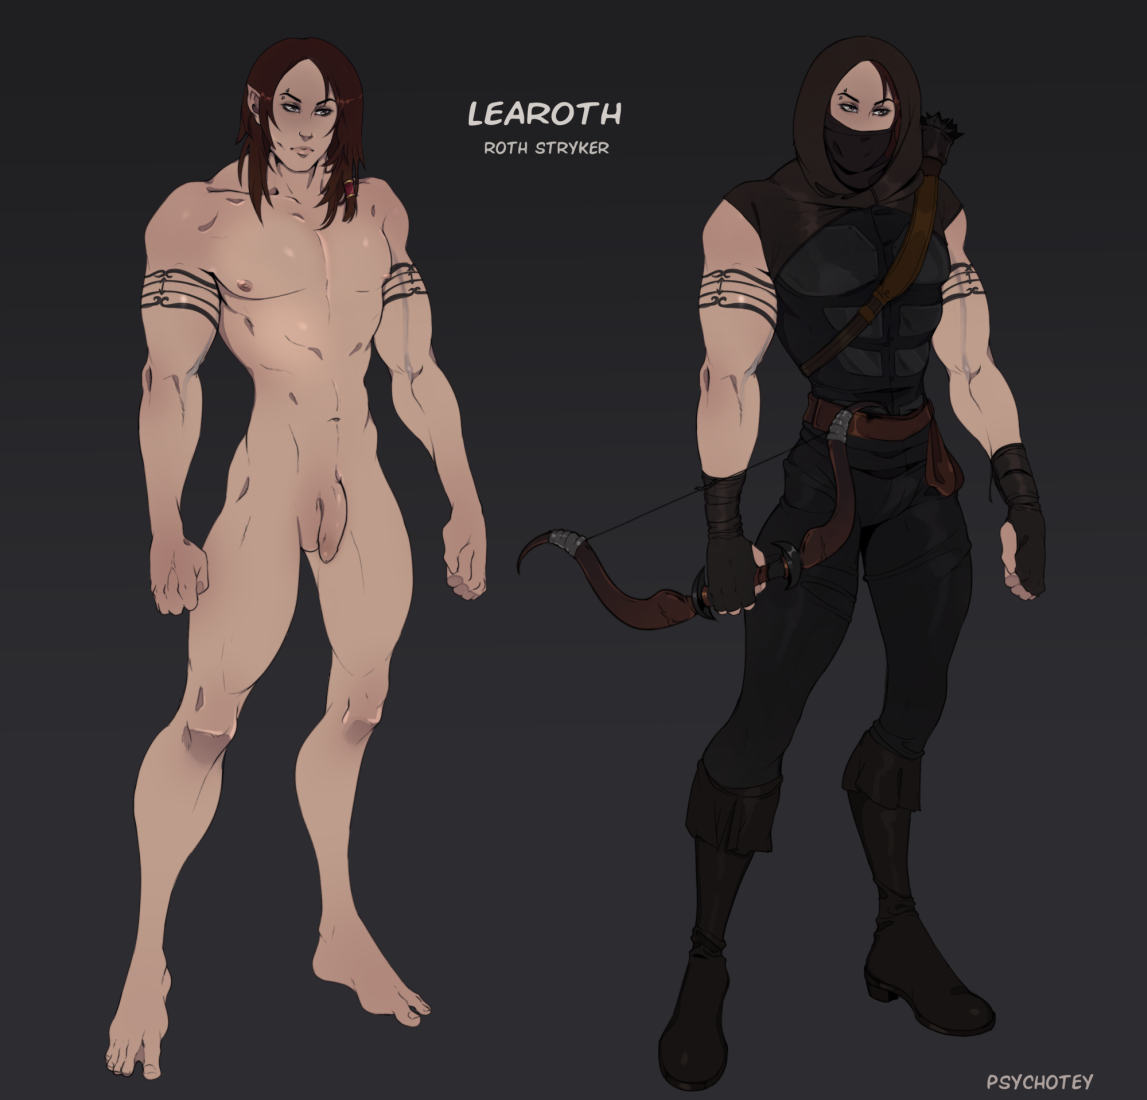 Learoth reference sheet